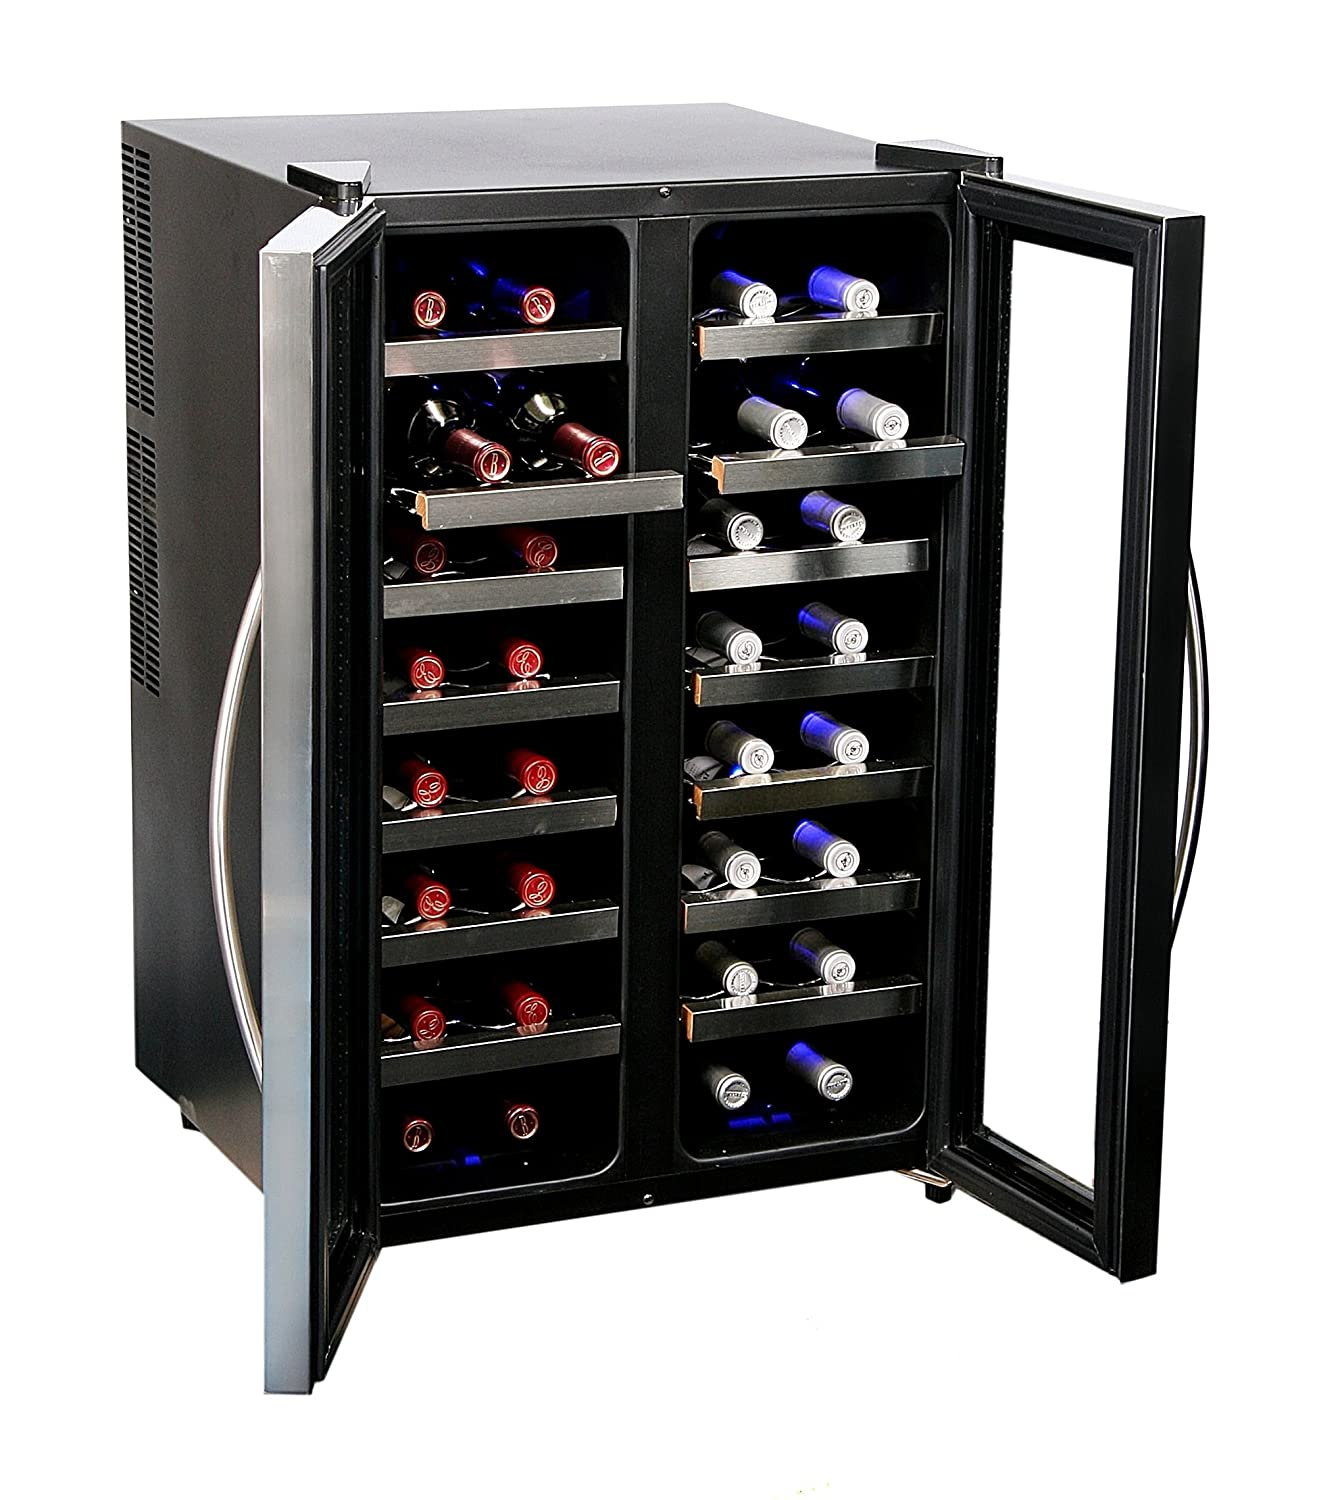 Good Amazon.com: Whynter WC 321DD 32 Bottle Dual Temperature Zone Wine Cooler,  Stainless Steel Trimmed Glass Door With Black Cabinet: Appliances